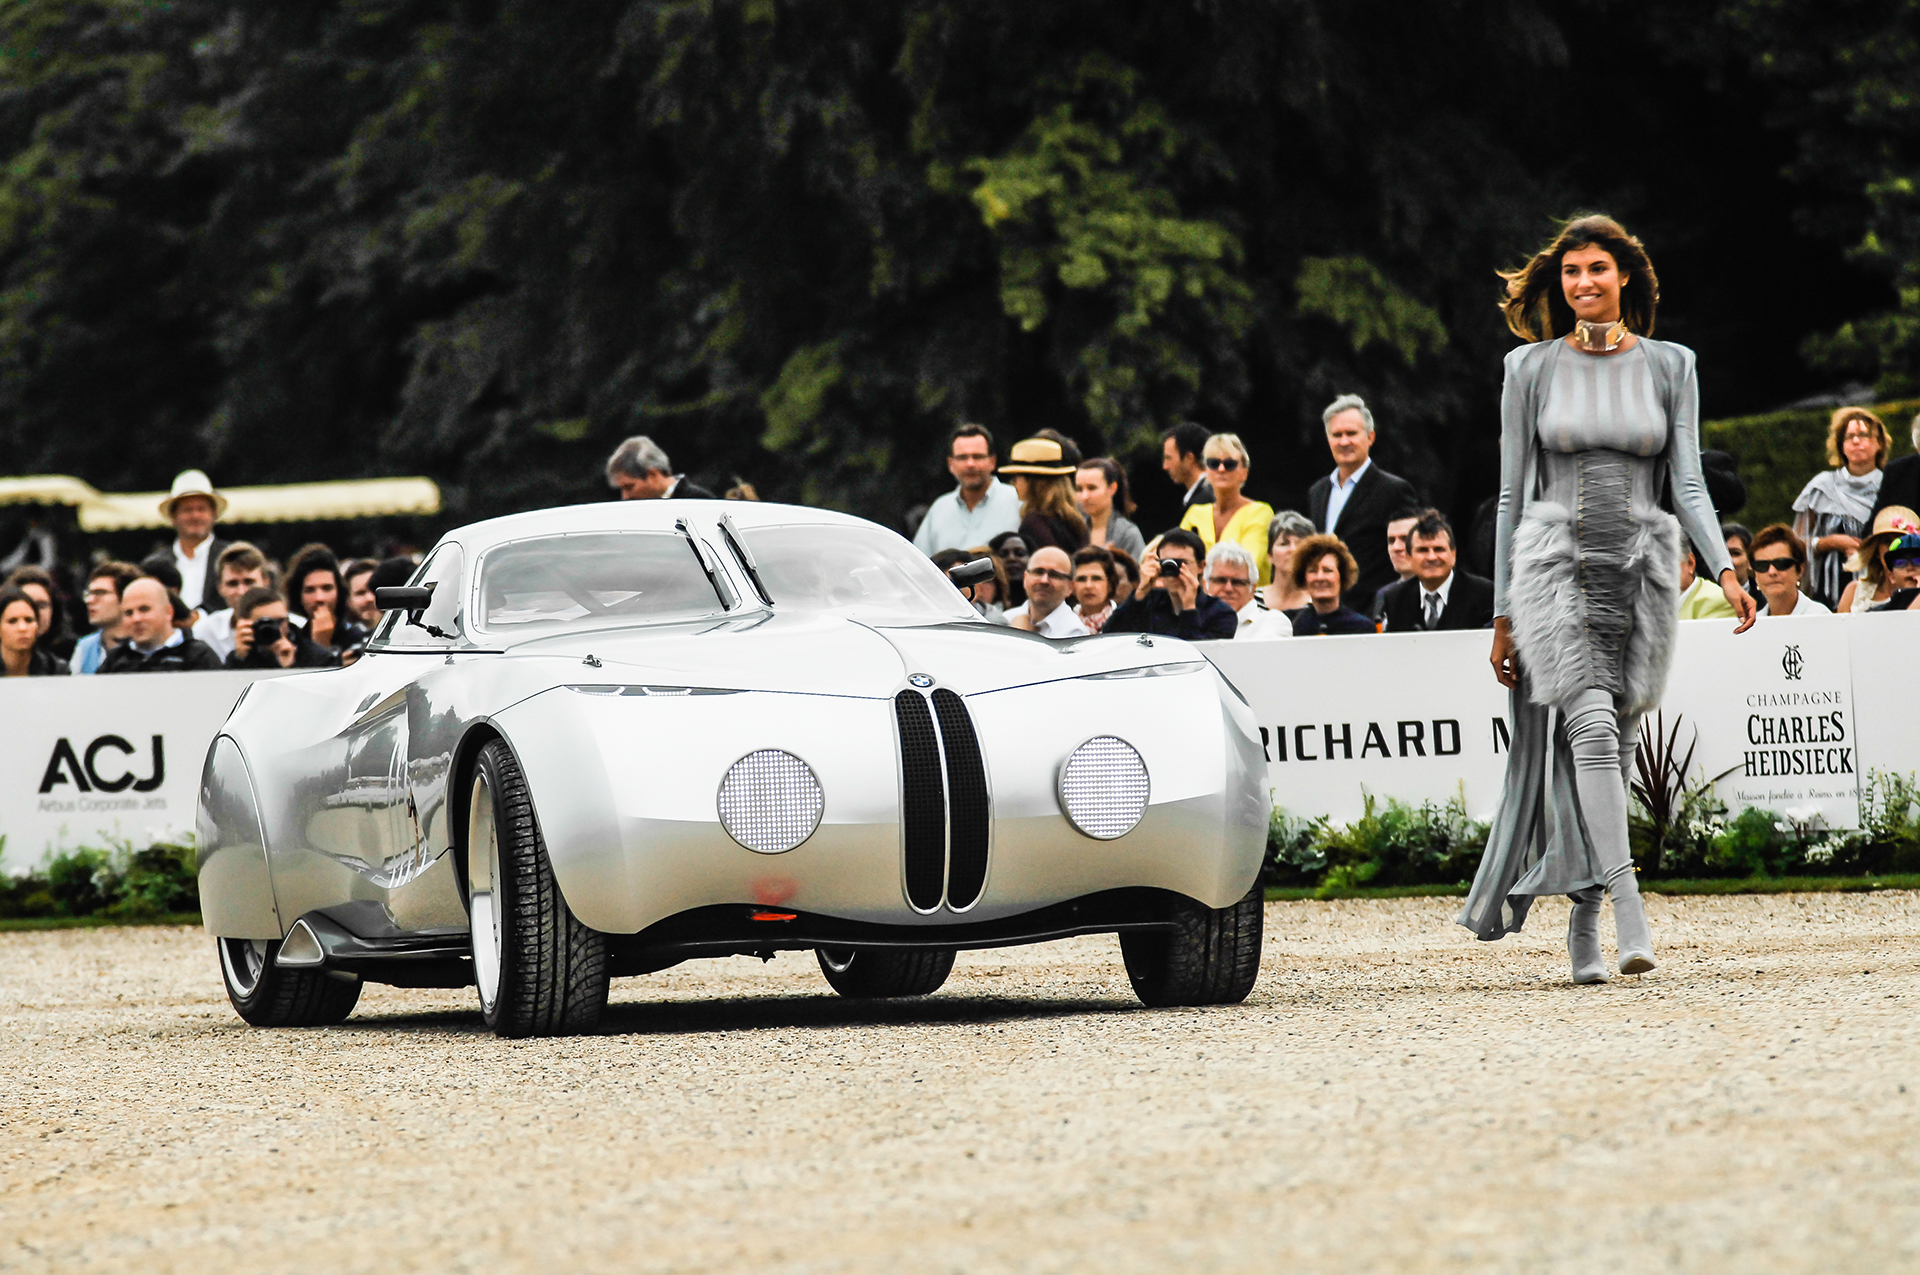 Chantilly 2016 - BMW Mille Miglia Coupé Concept - fashion Balmain - photo by Pierre-Yves Riom